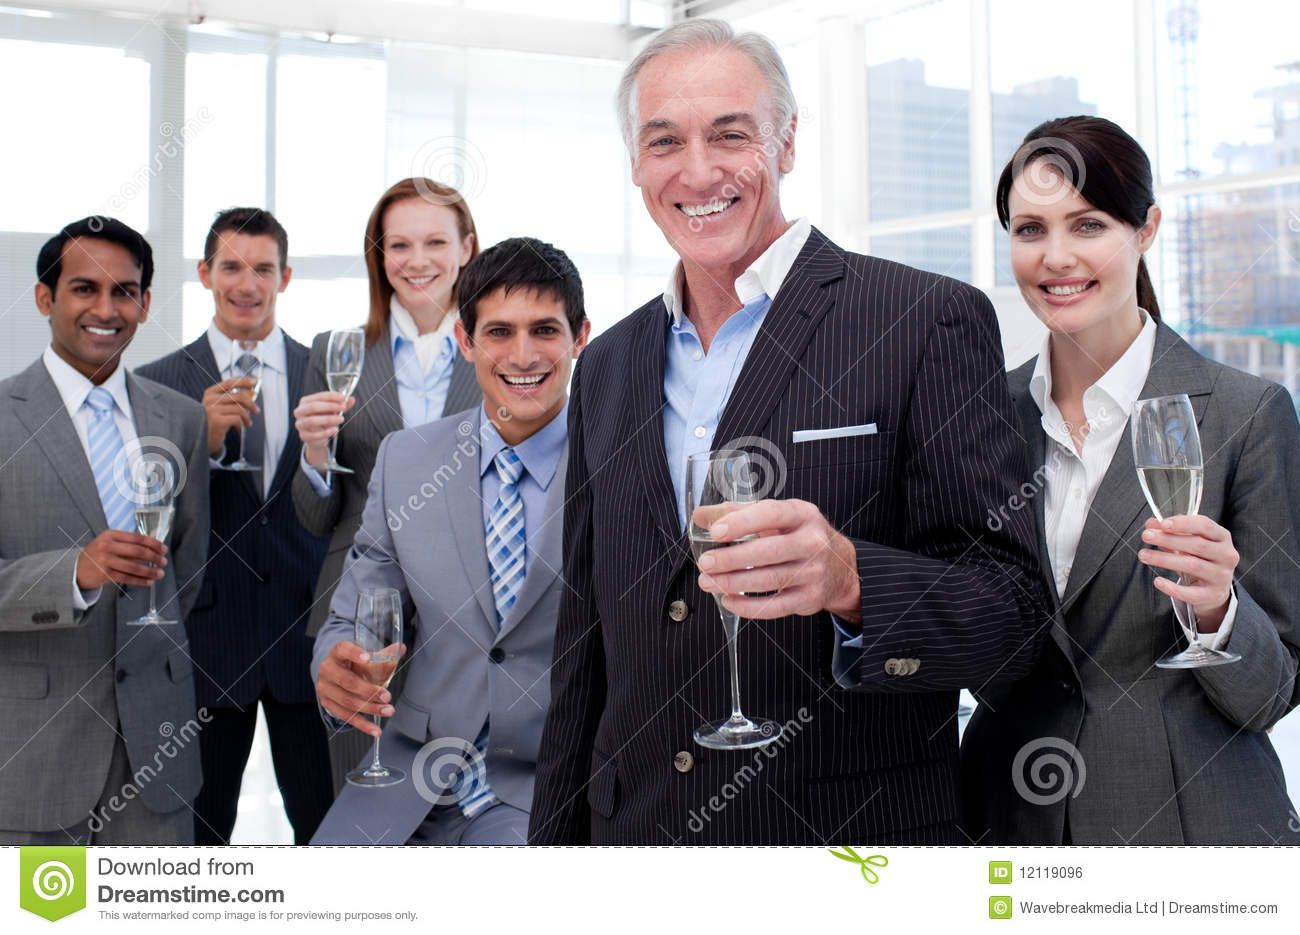 Smiling business team holding glasses of Chamoagne